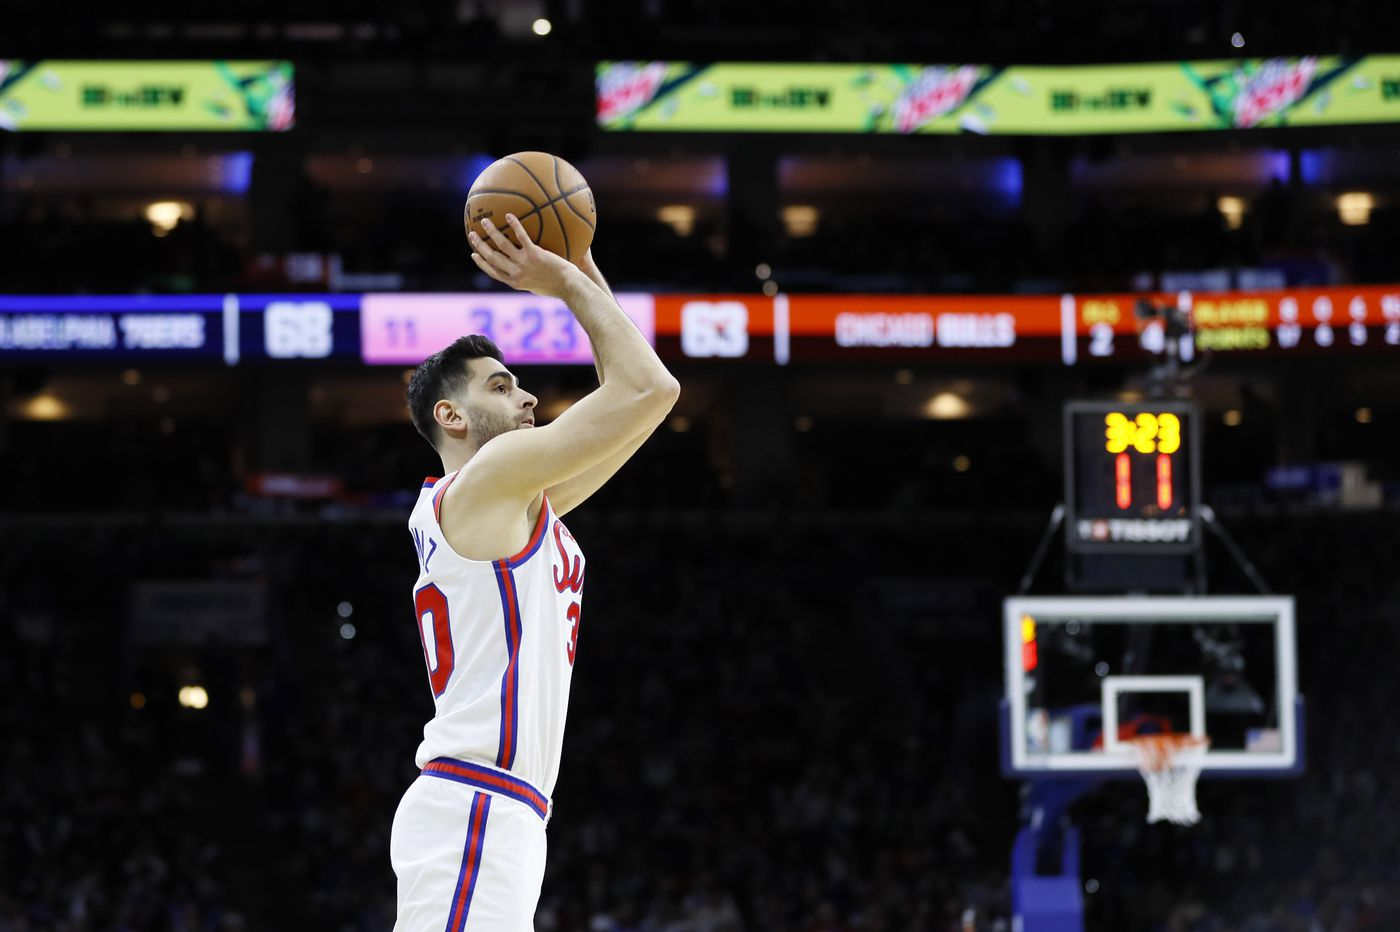 Sixers-Bulls best & worst: Furkan Korkmaz's sharpshooting, Philly playing six on five, Kris Dunn's woes